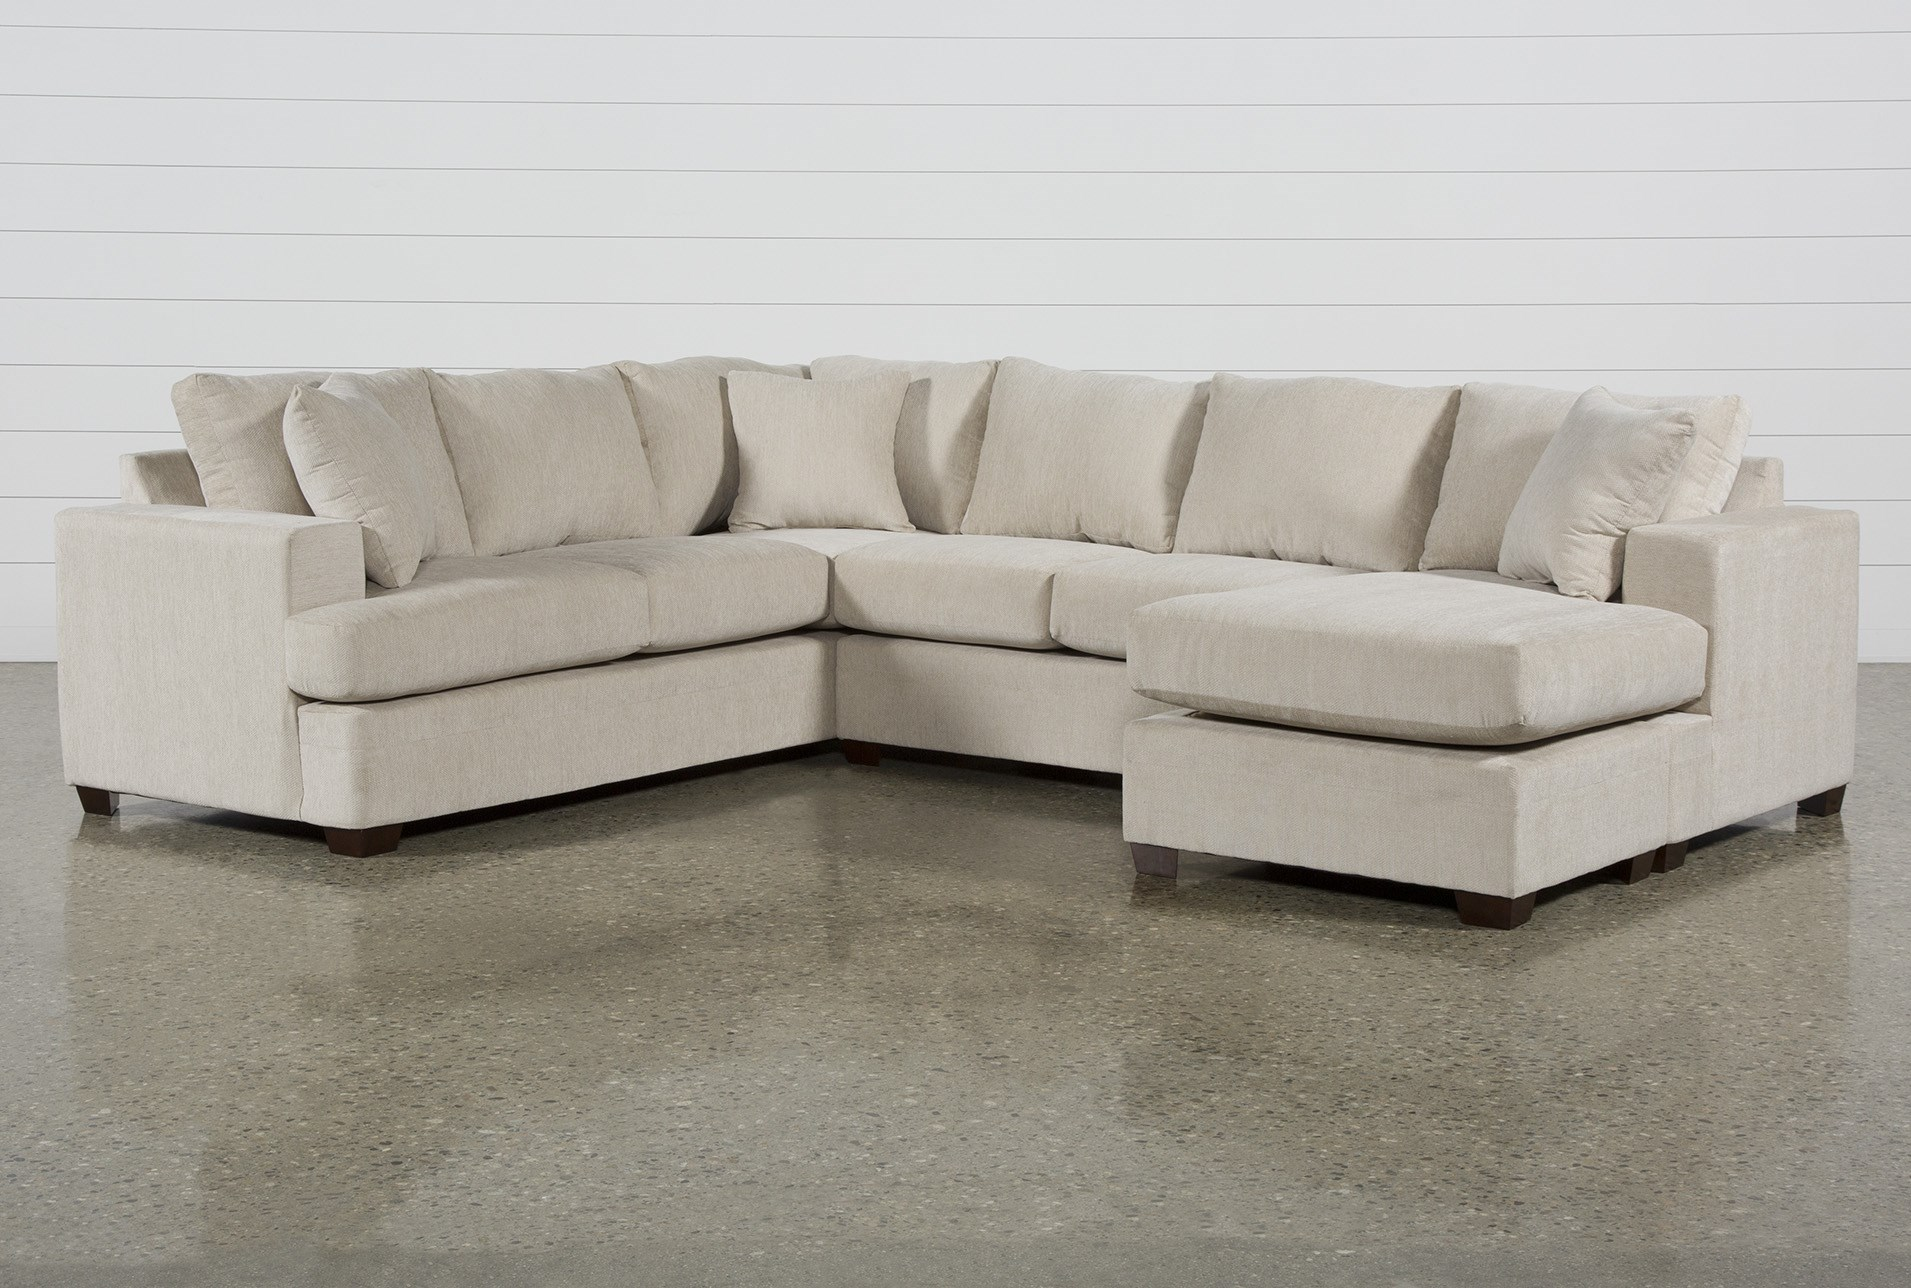 Kerri Sand 2 Piece Sectional With Right Arm Facing Sofa Chaise Qty 1 Has Been Successfully Added To Your Cart